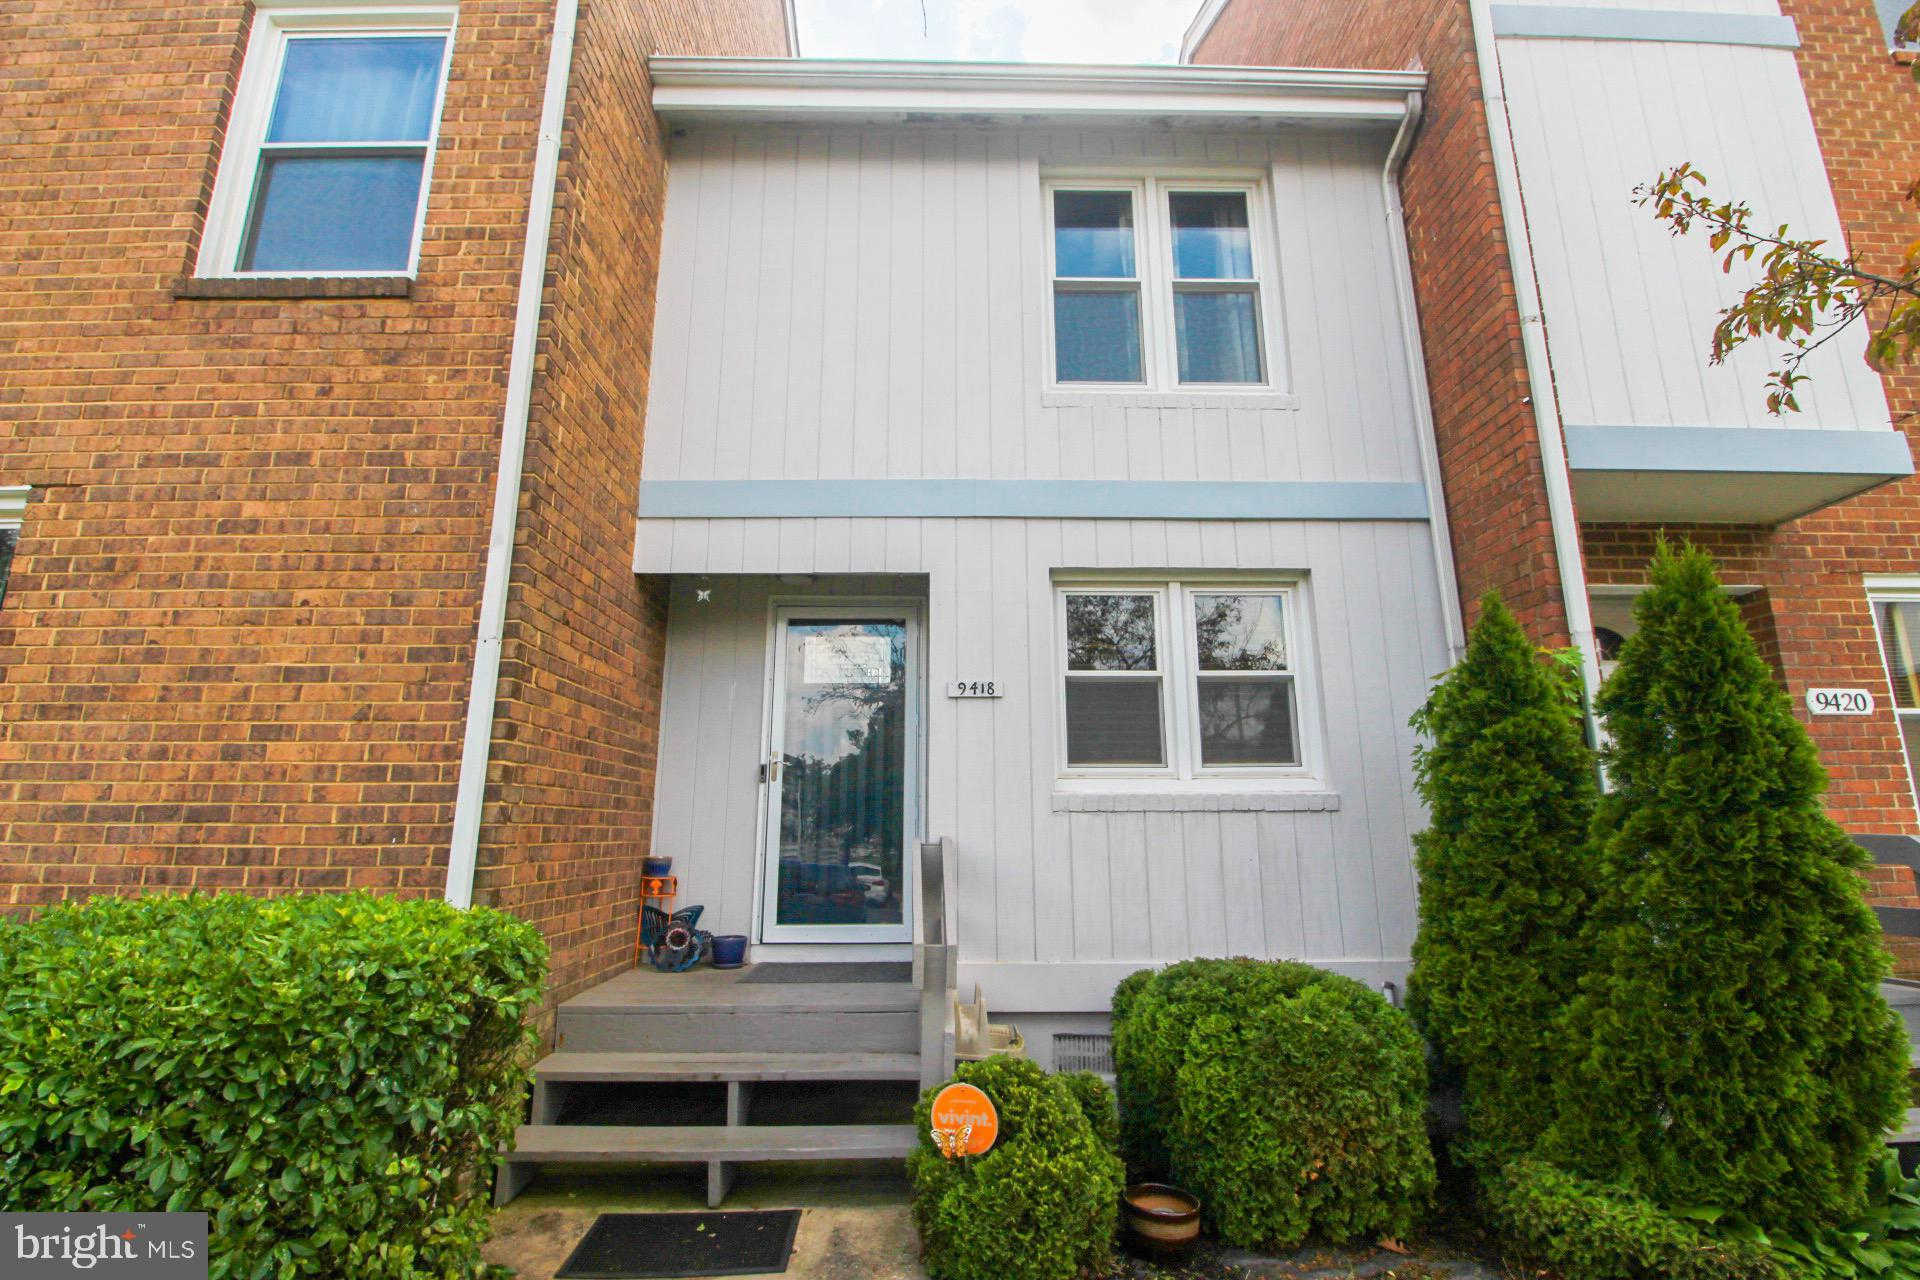 Another Property Sold - 9418 Canterbury Riding #271, Laurel, MD 20723